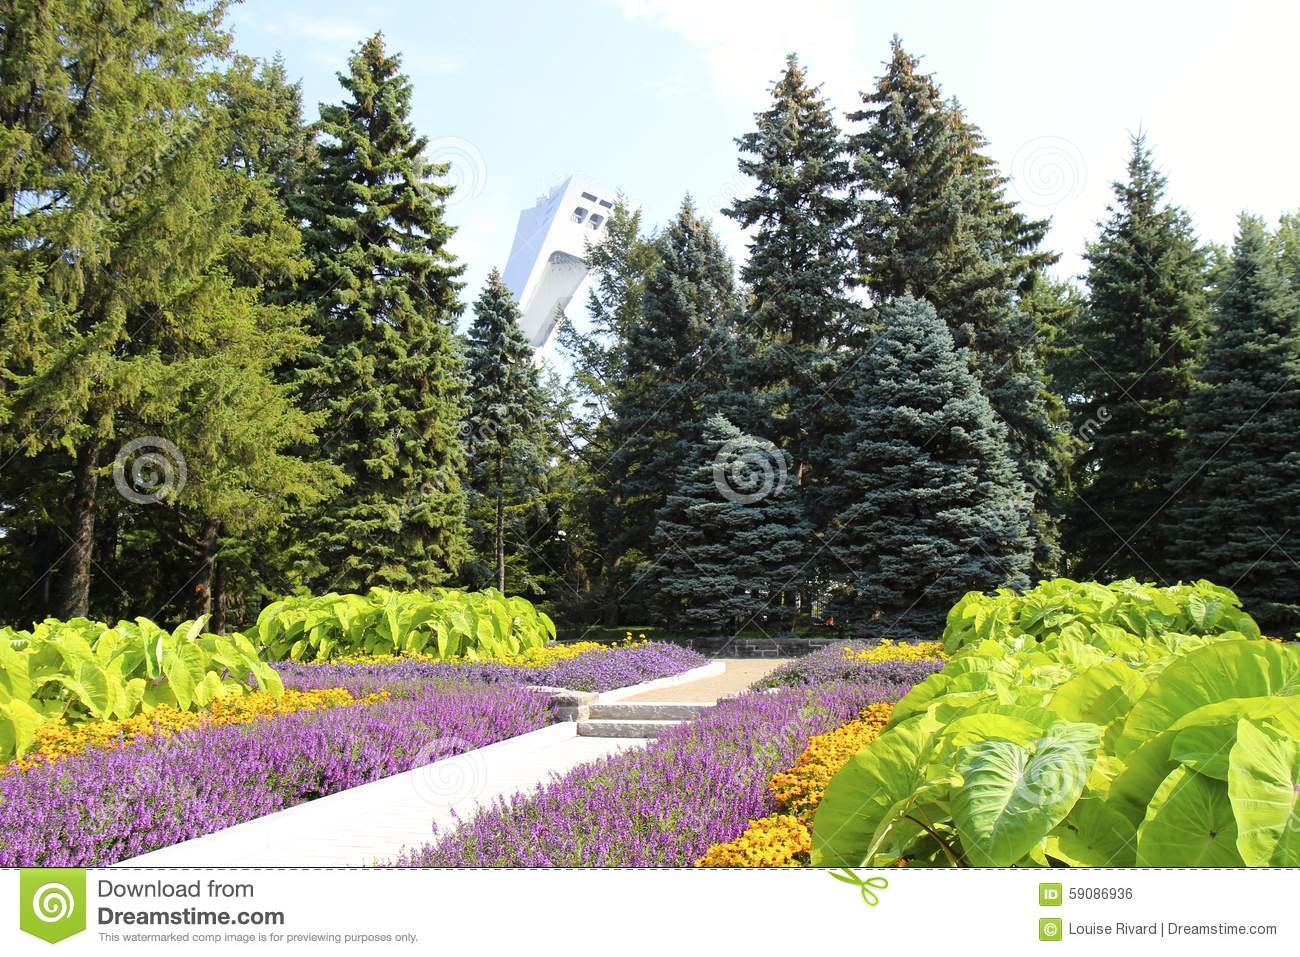 Que Planter En Septembre Fleurs Fleurs Et Stade Olympique De Septembre Photo Stock Image Du